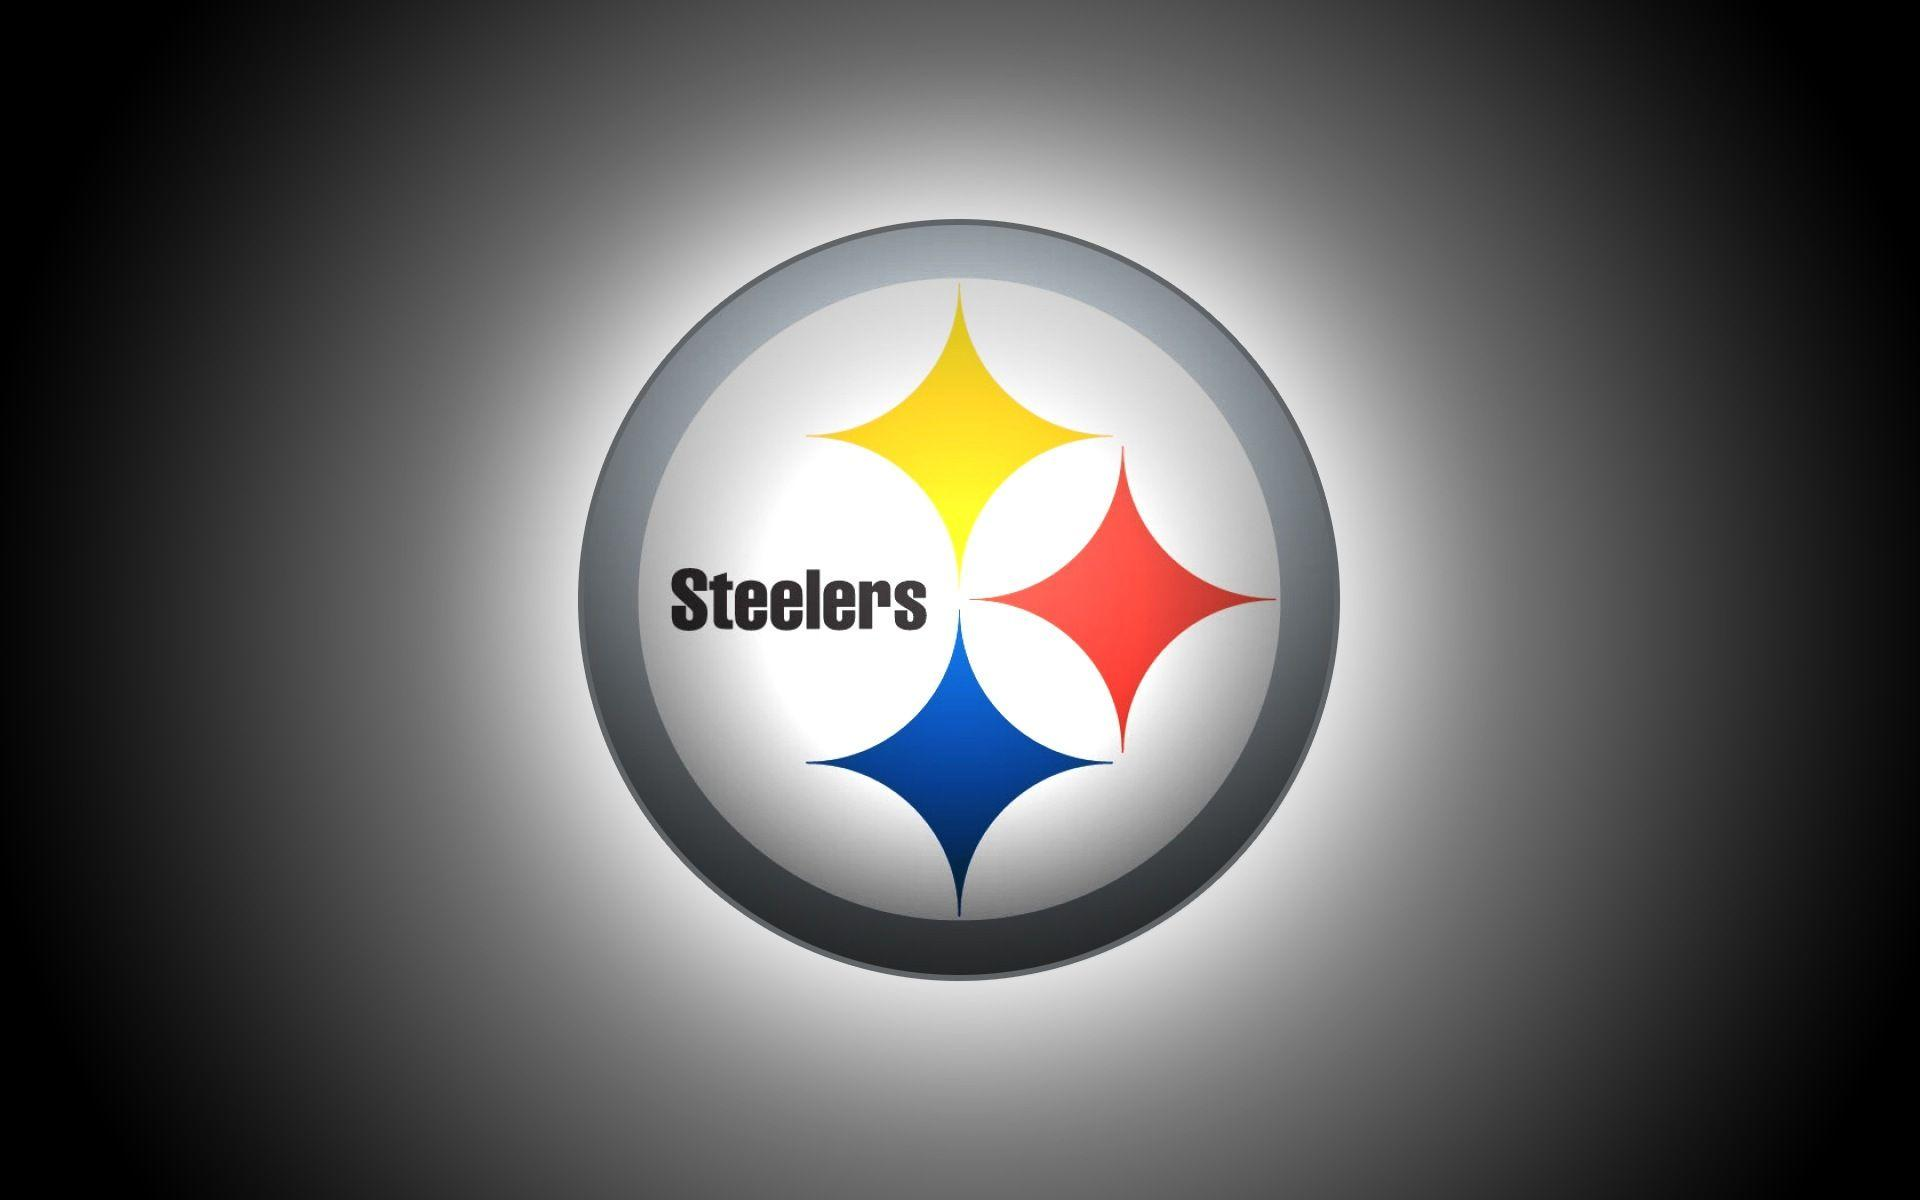 Free Pittsburgh Steelers wallpaper wallpaper | Pittsburgh Steelers ...